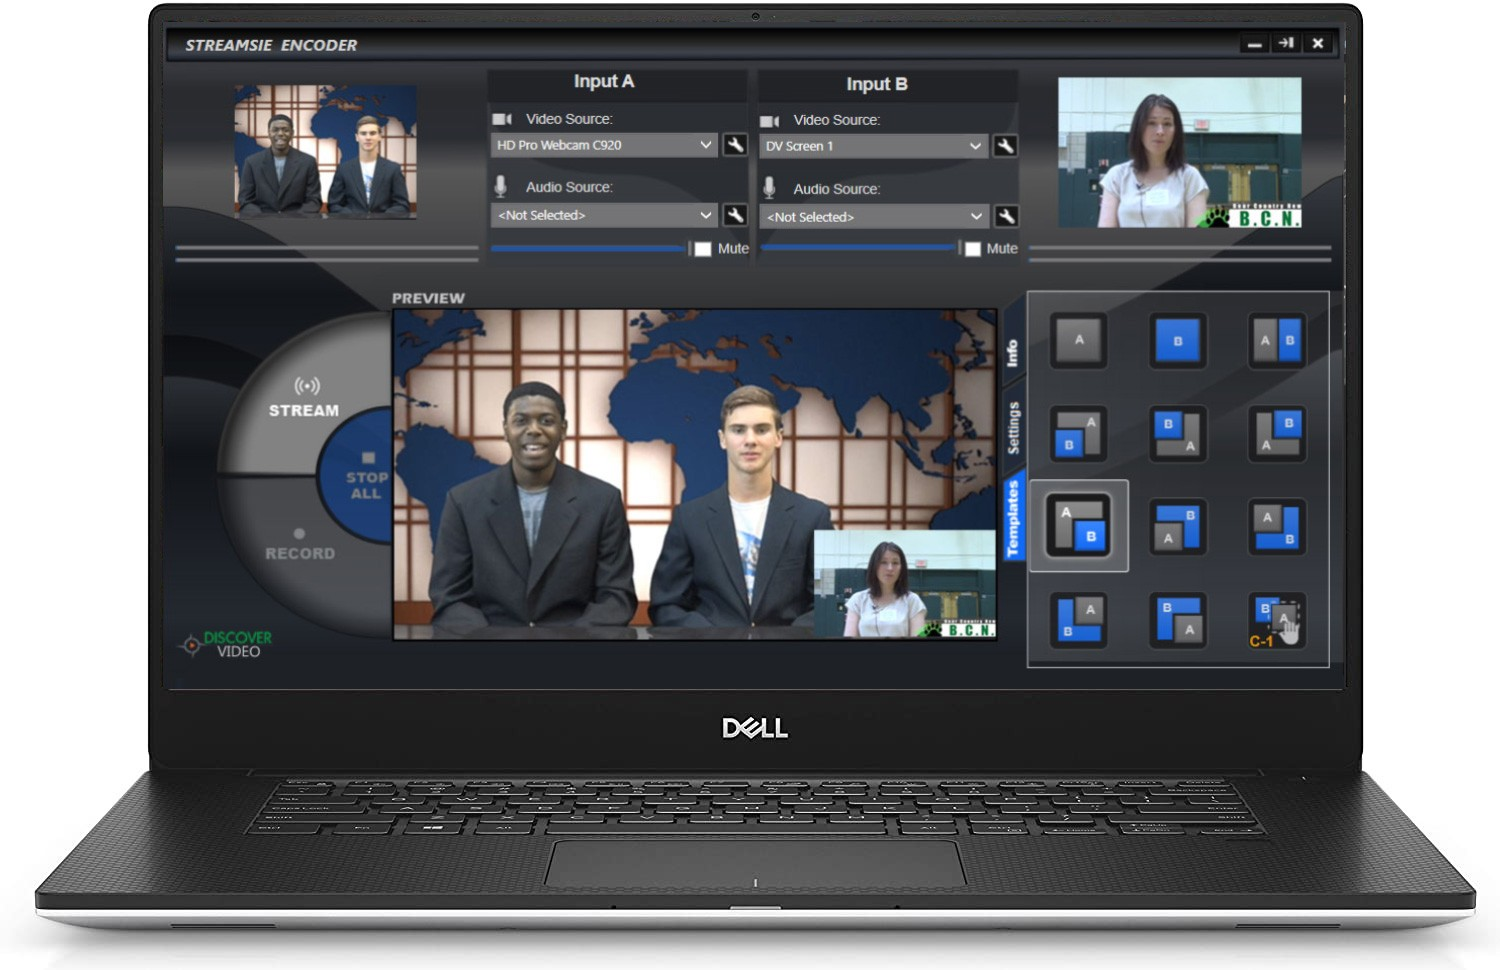 Rover Dedicated Laptop Streaming Encoder System from DiscoverVideo